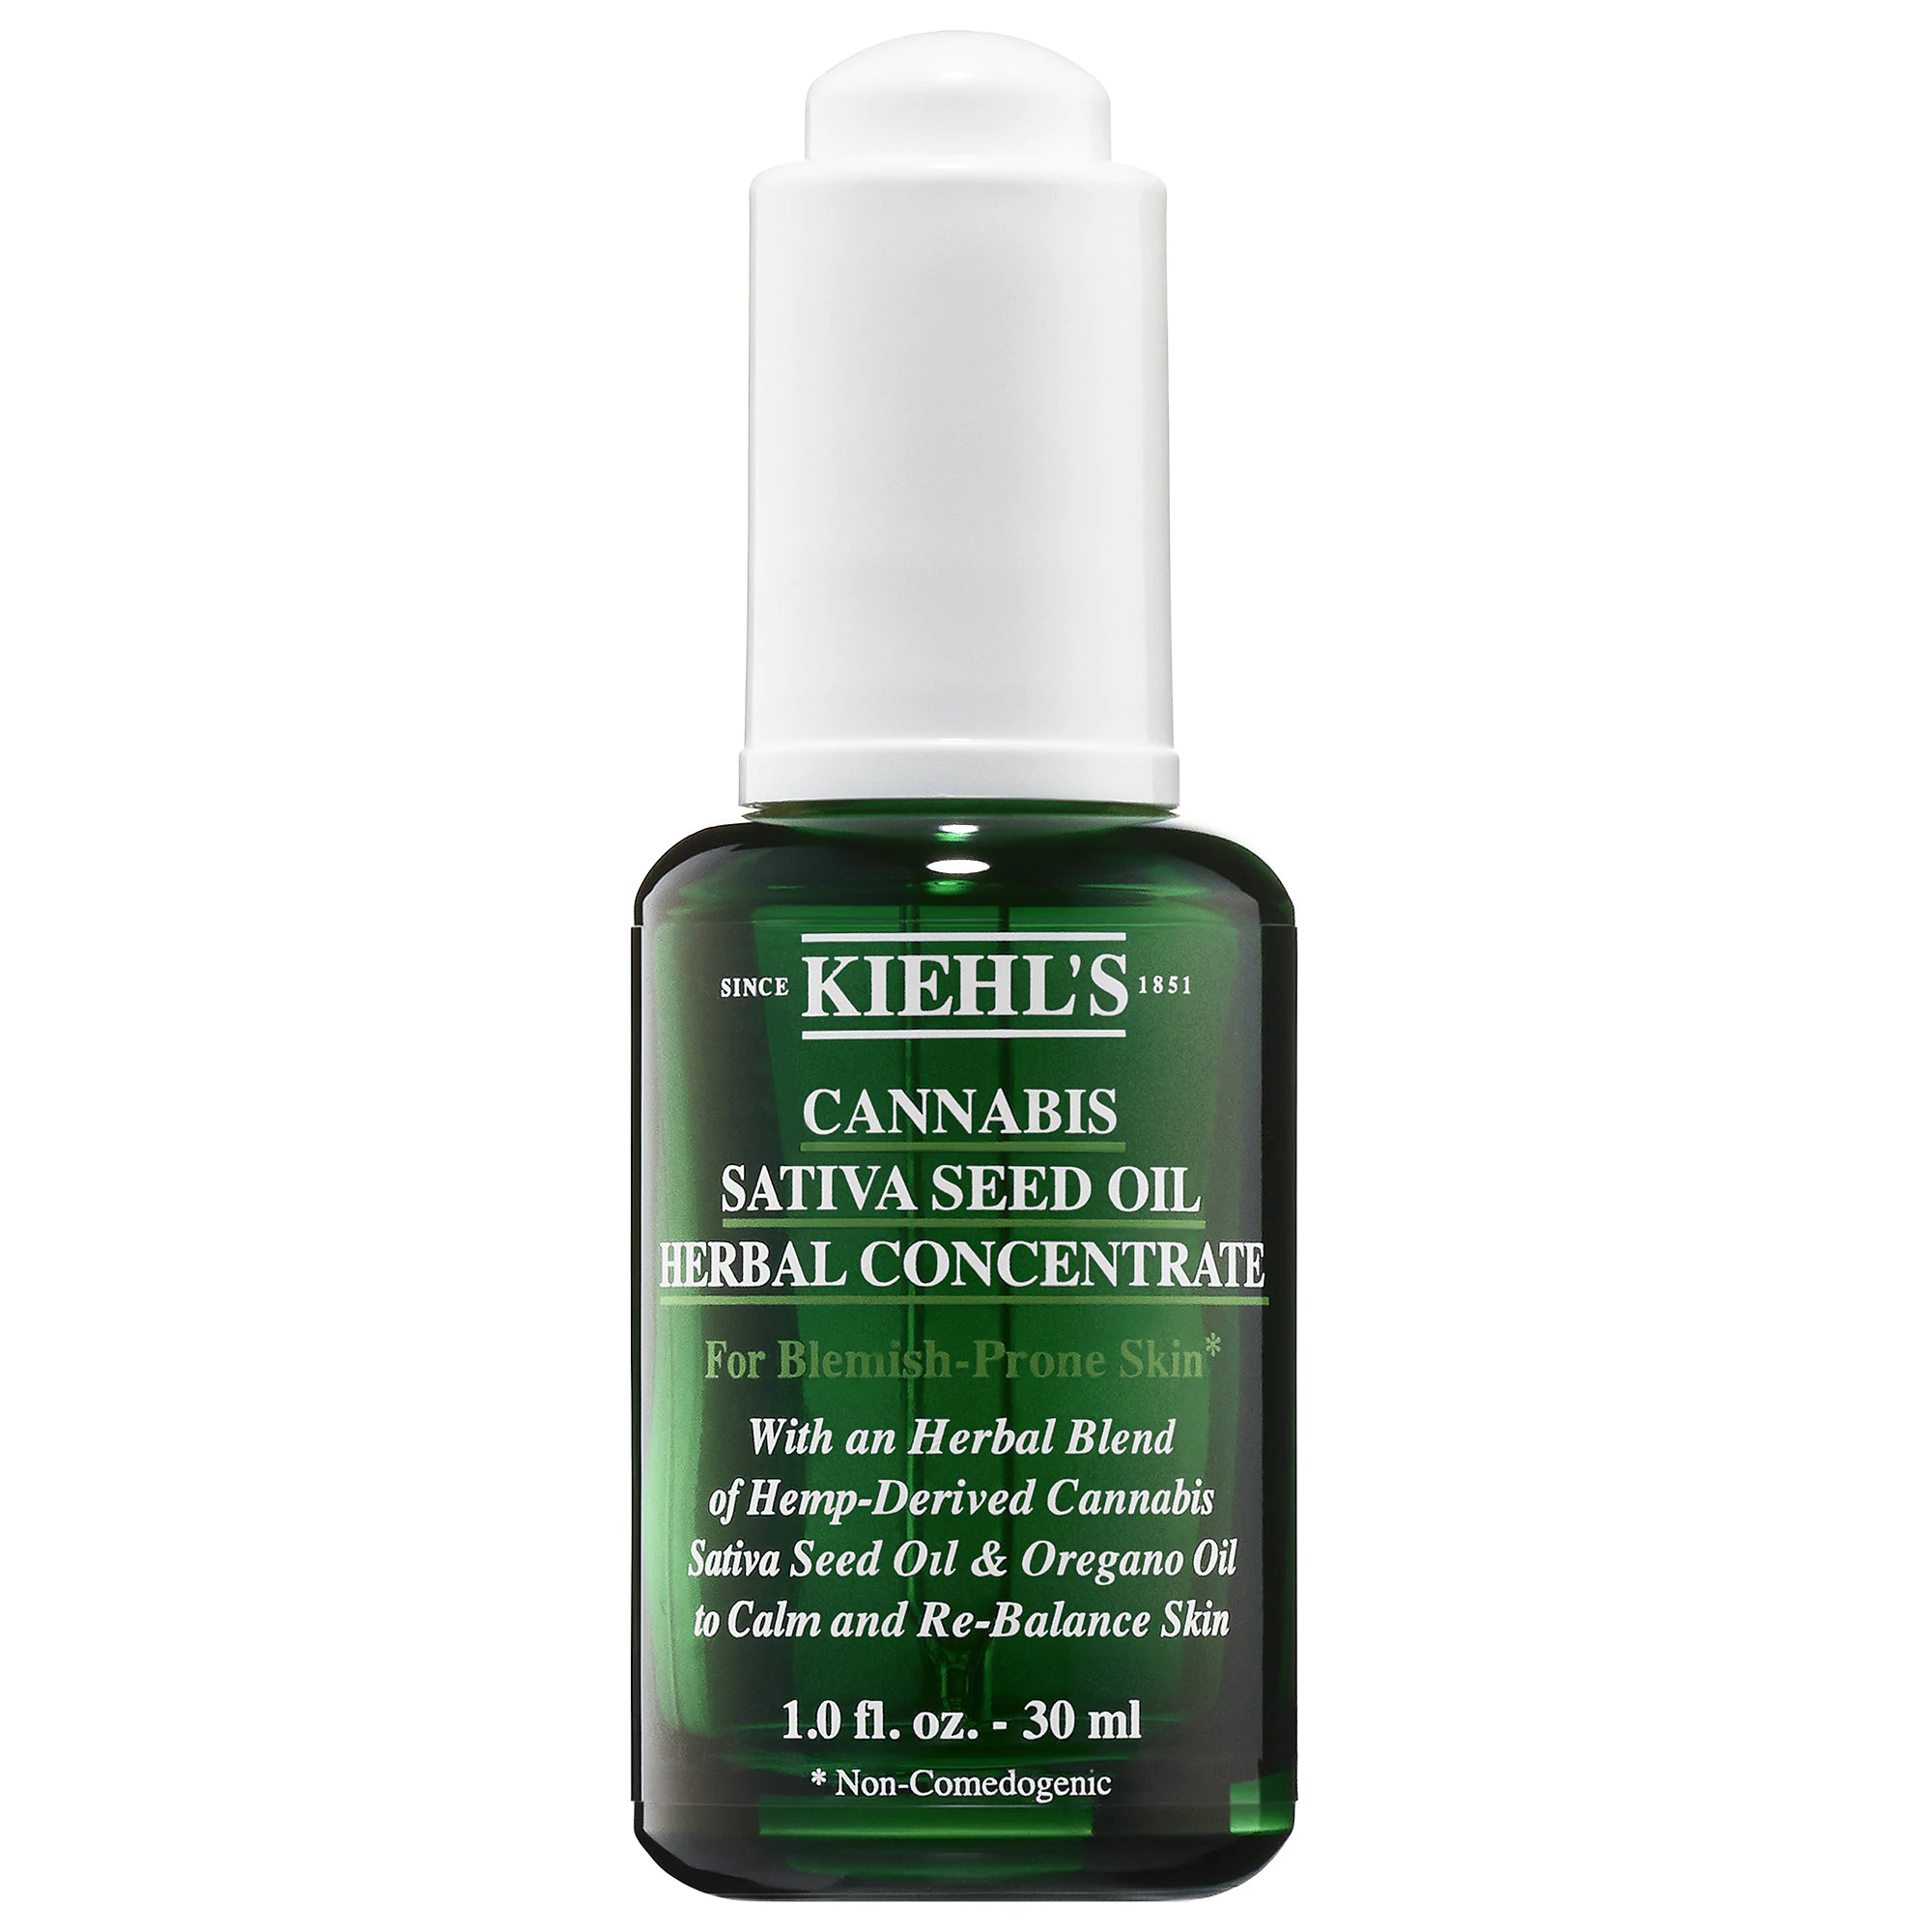 Kiehl's Since 1851-Cannabis Sativa Seed Oil Herbal Concentrate (Hemp-Derived)